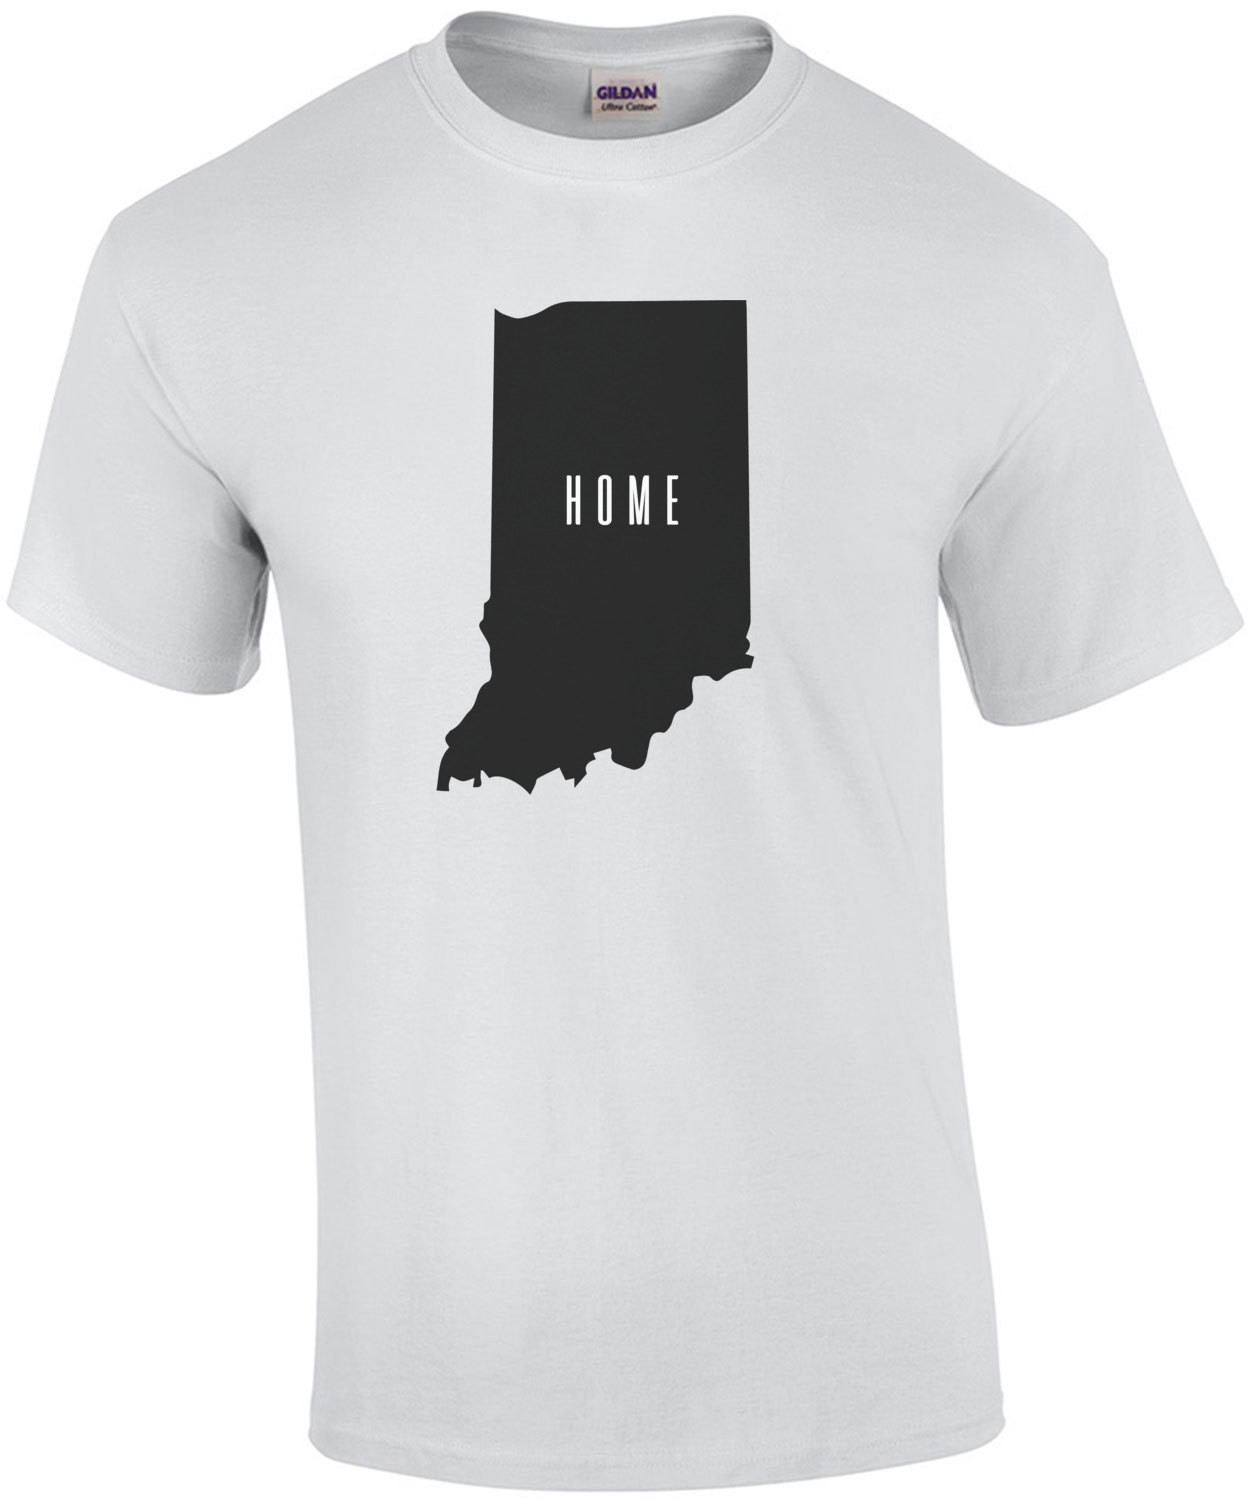 Home Indiana - Indiana T-Shirt